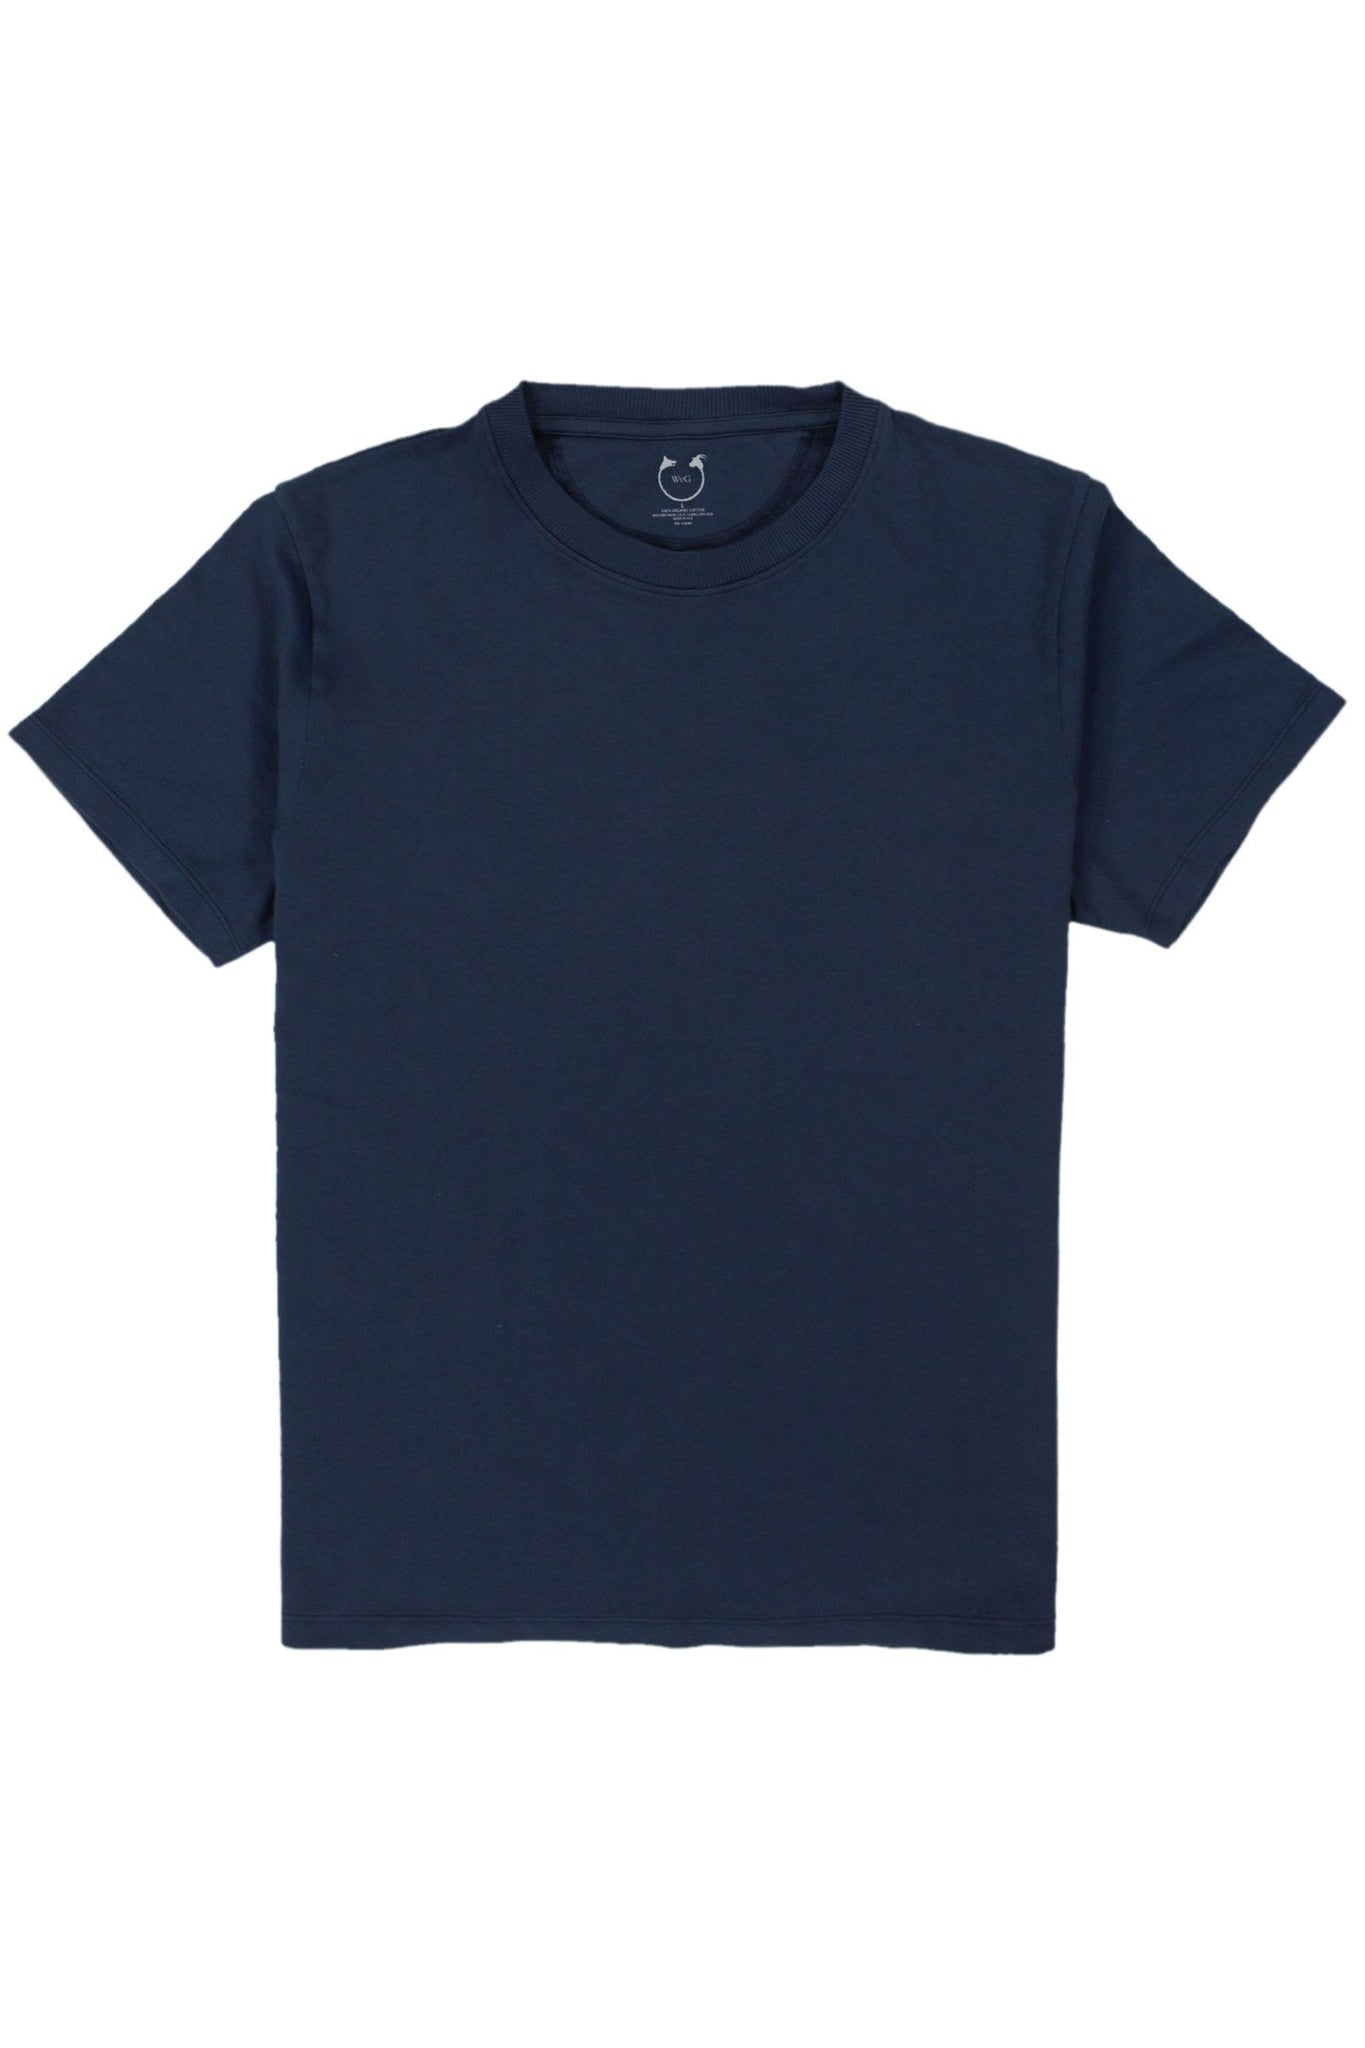 """Hector-Mini"" Short Sleeve Crew"